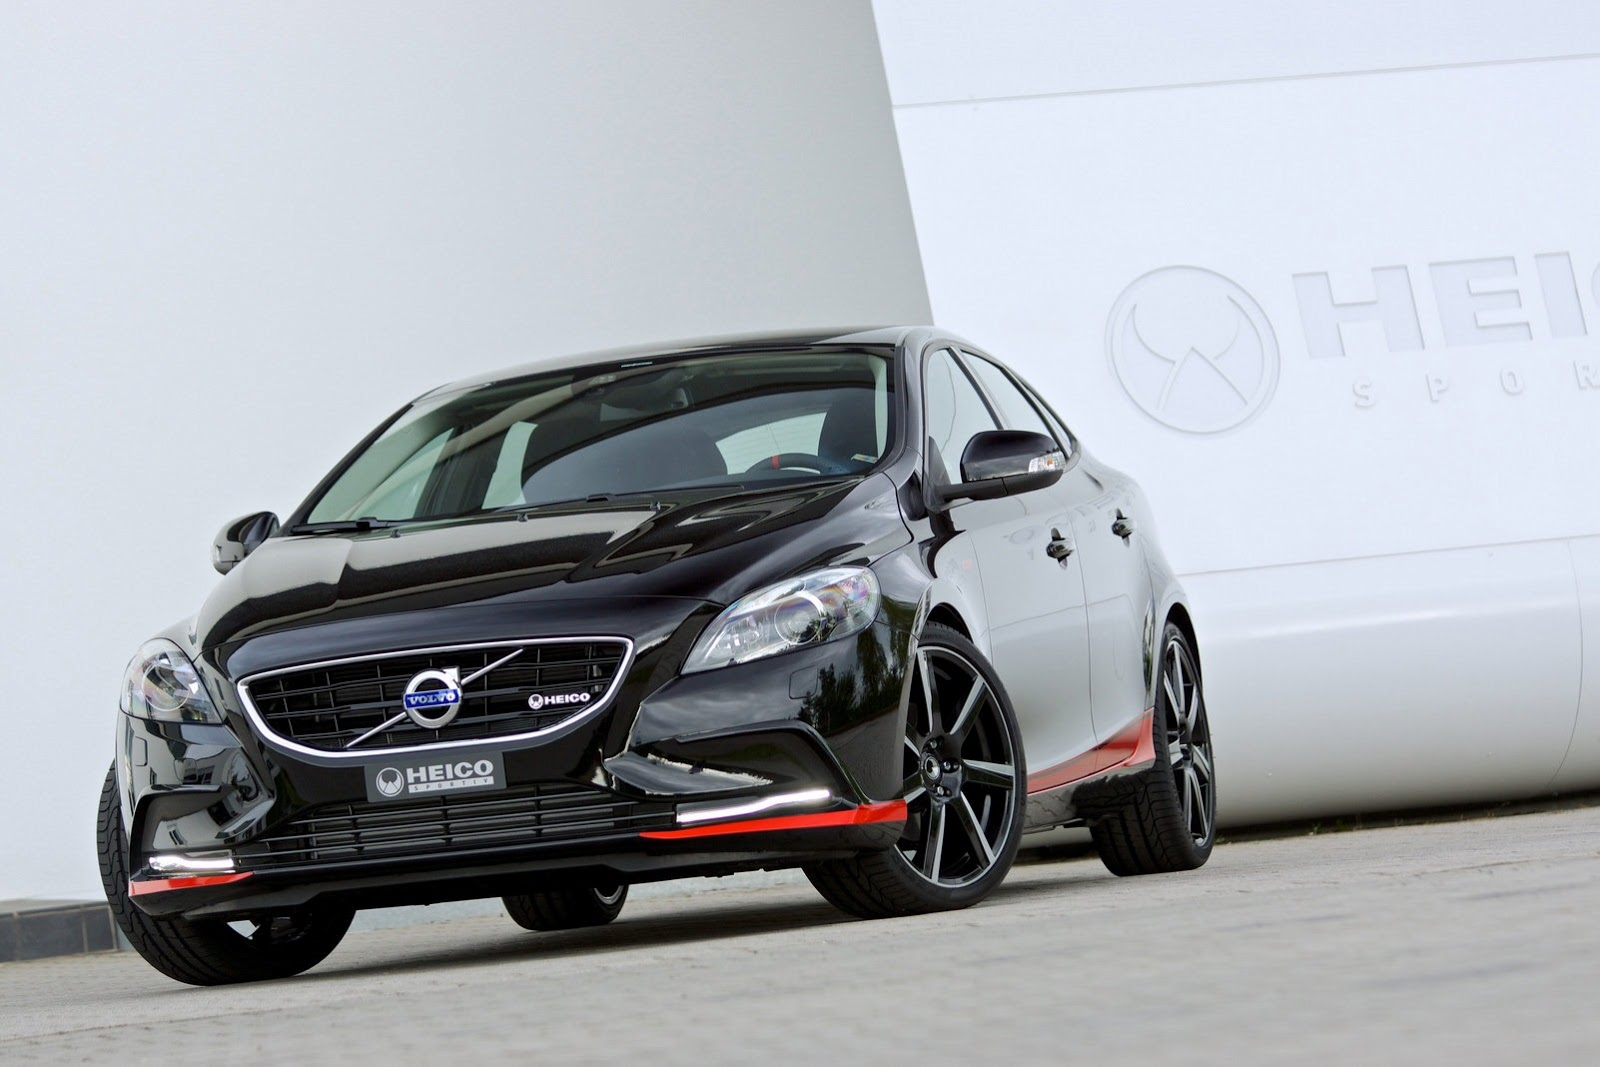 volvo v40 pirelli edition by heico sportiv autoevolution. Black Bedroom Furniture Sets. Home Design Ideas